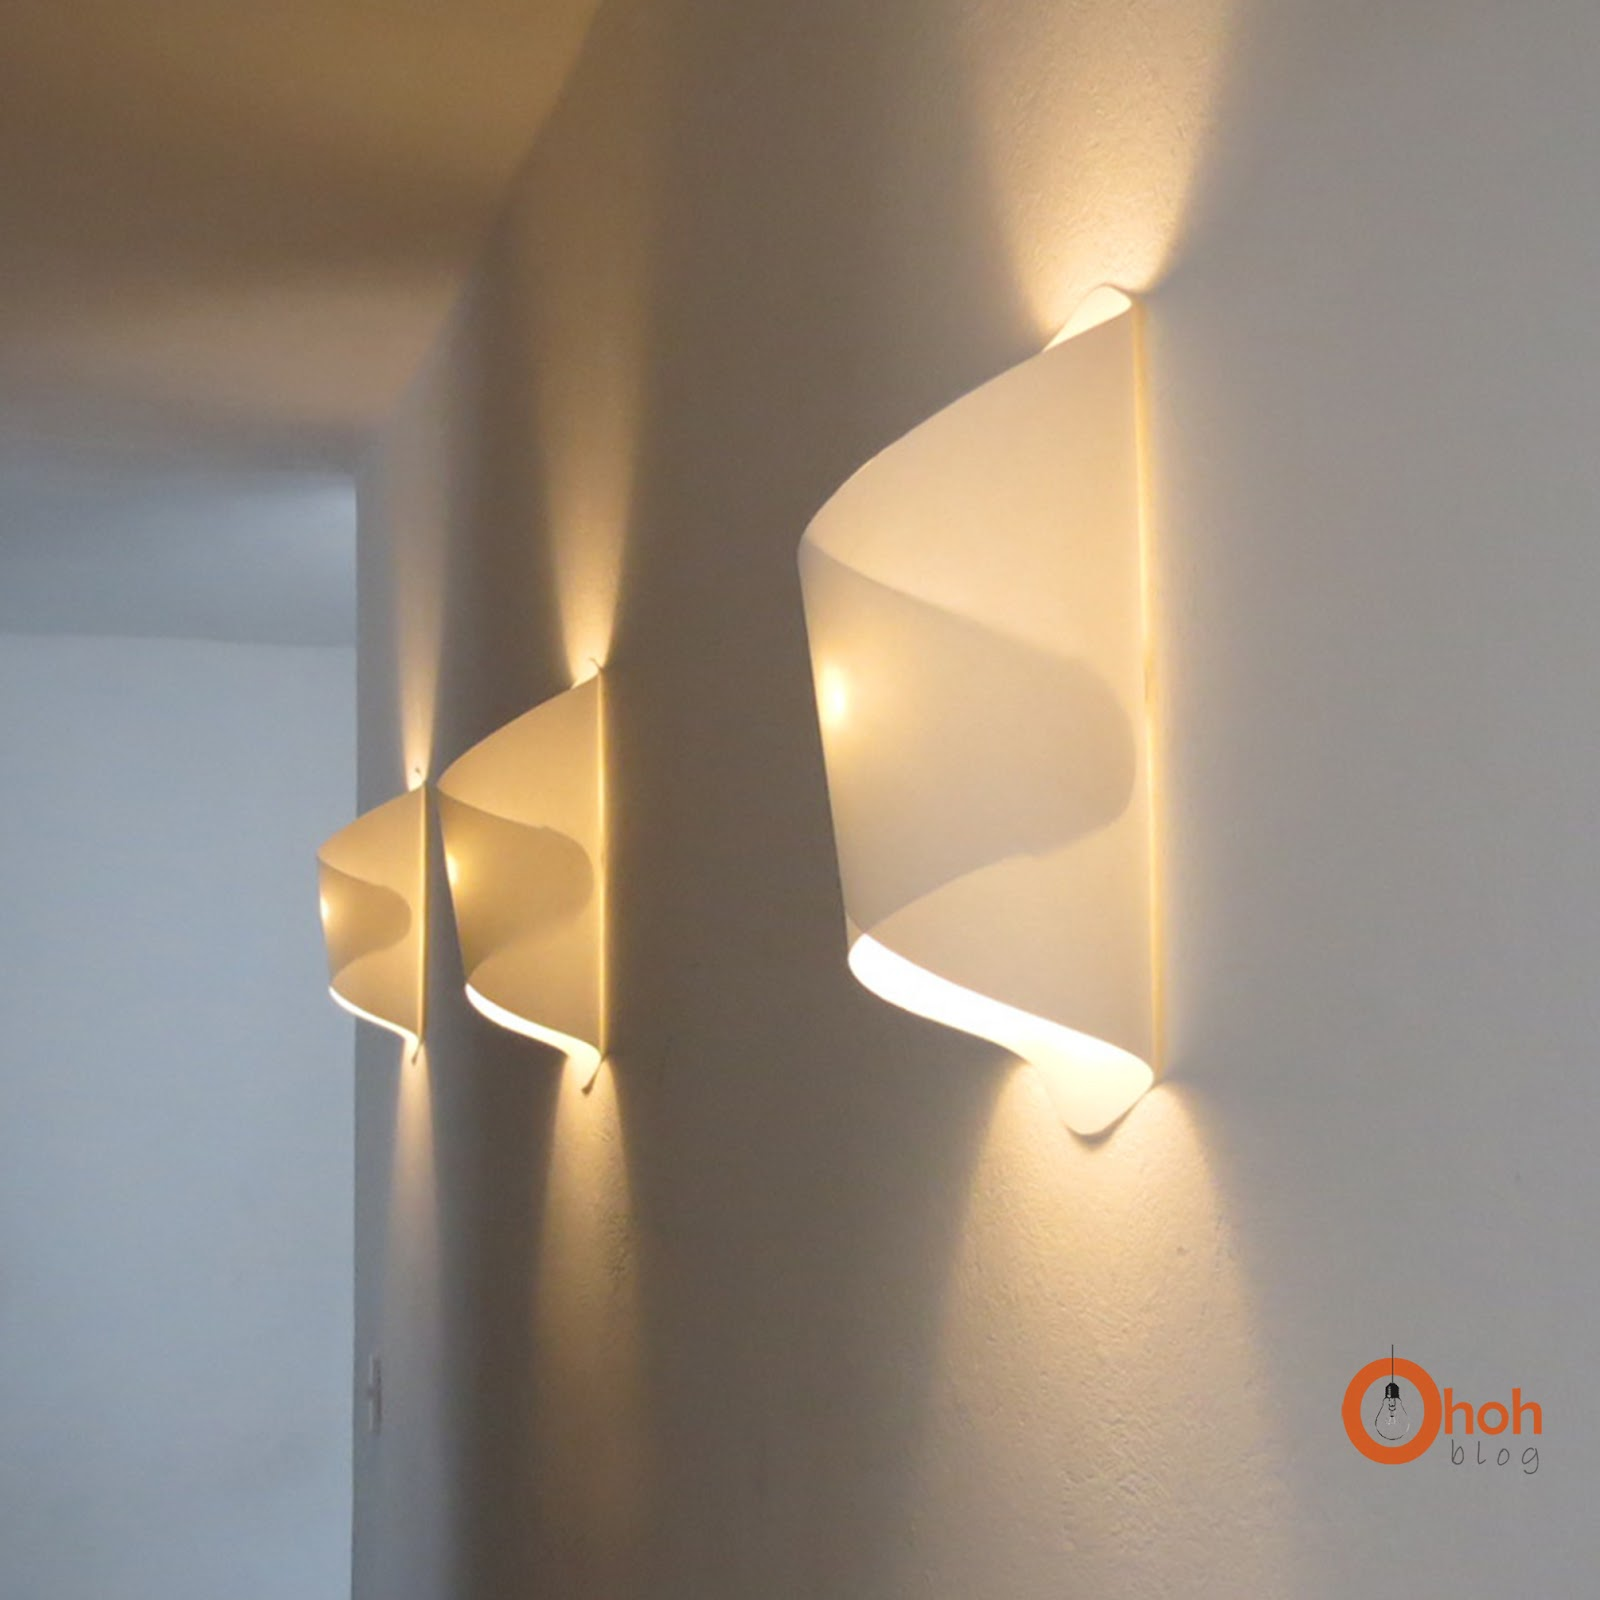 Wall Sconces Diy : DIY paper lamp / Lampara de papel - Ohoh Blog